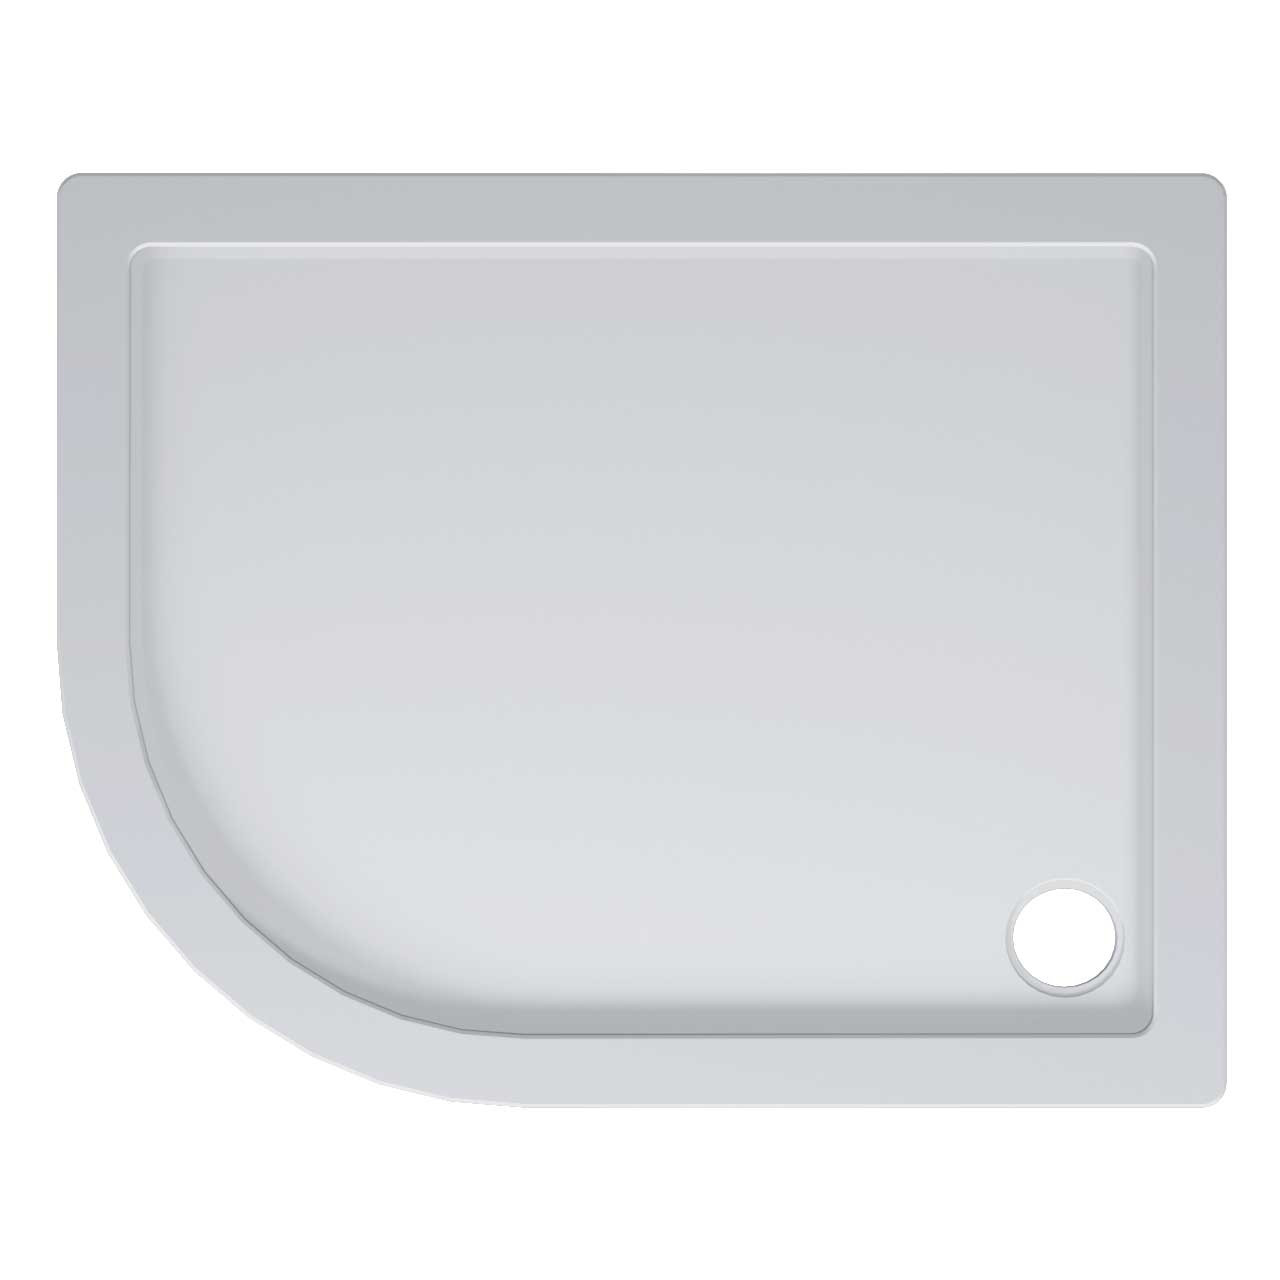 40mm Pearlstone 1000 x 800 Left Hand Offset Quadrant Shower Tray Top View